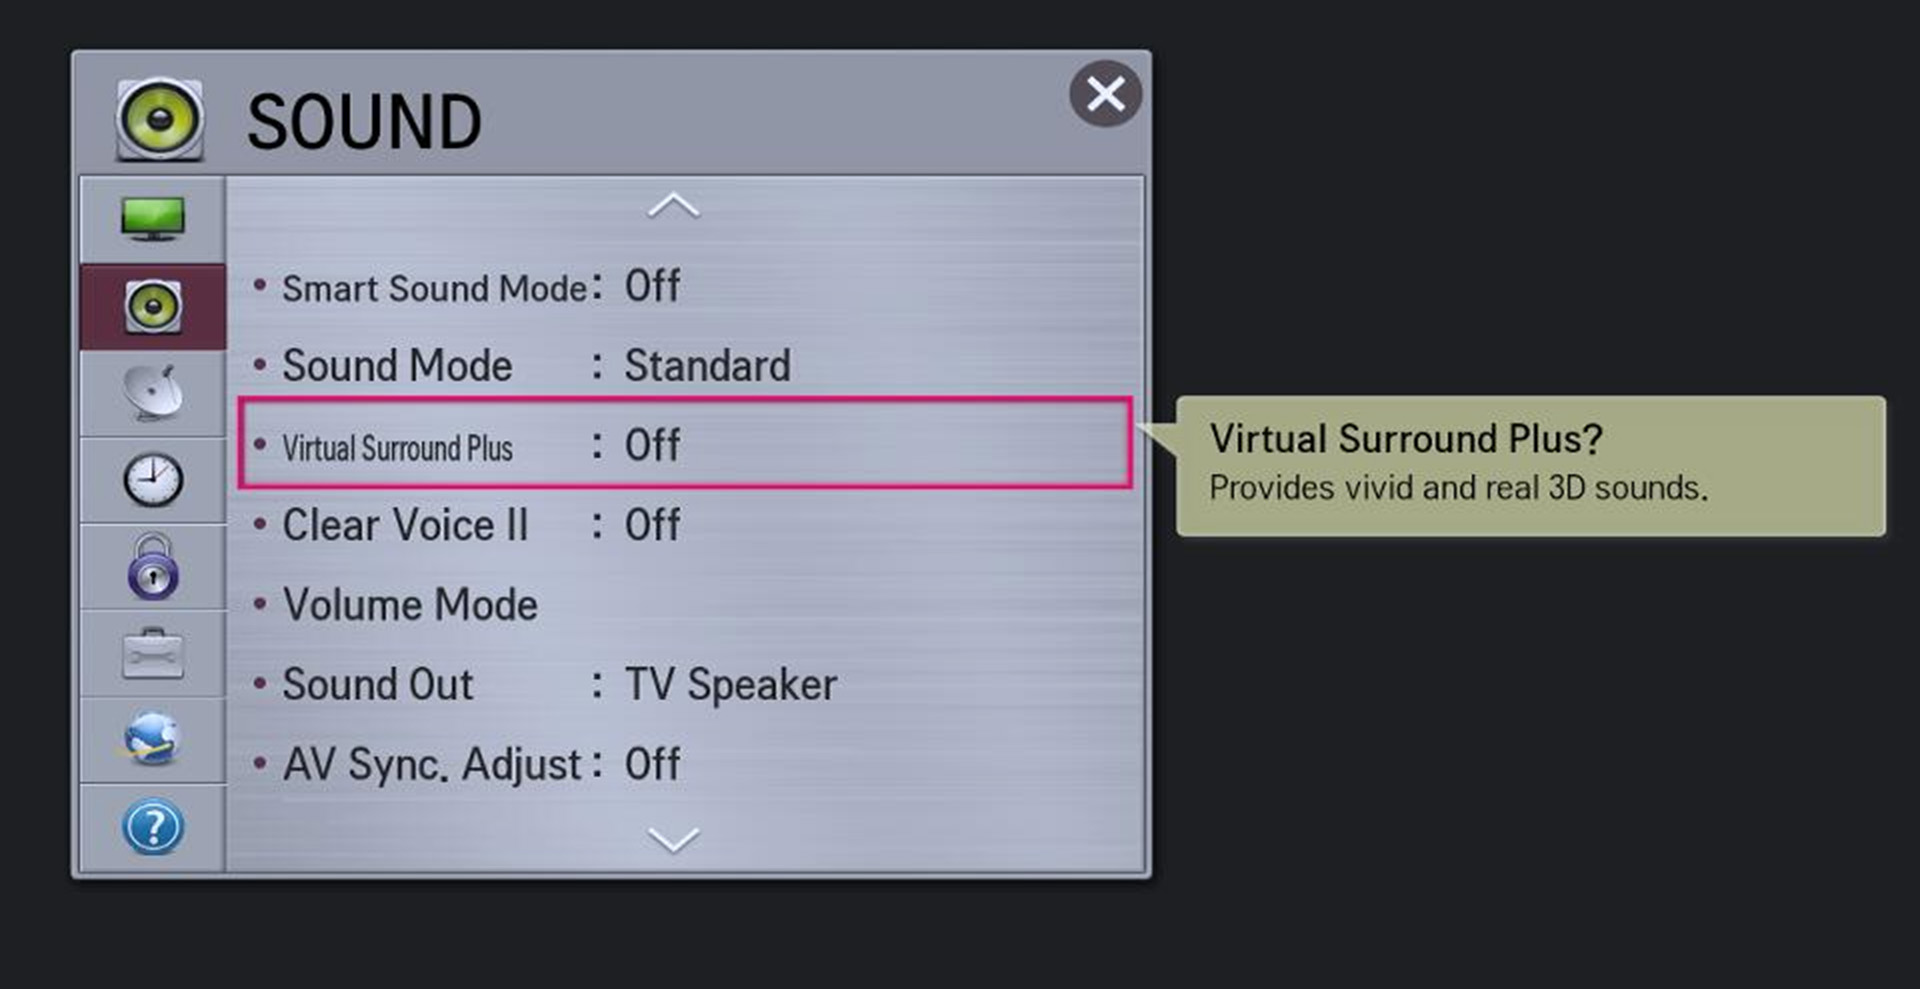 Troubleshooting Distorted Audio From the TV Speakers - TV | LG USA